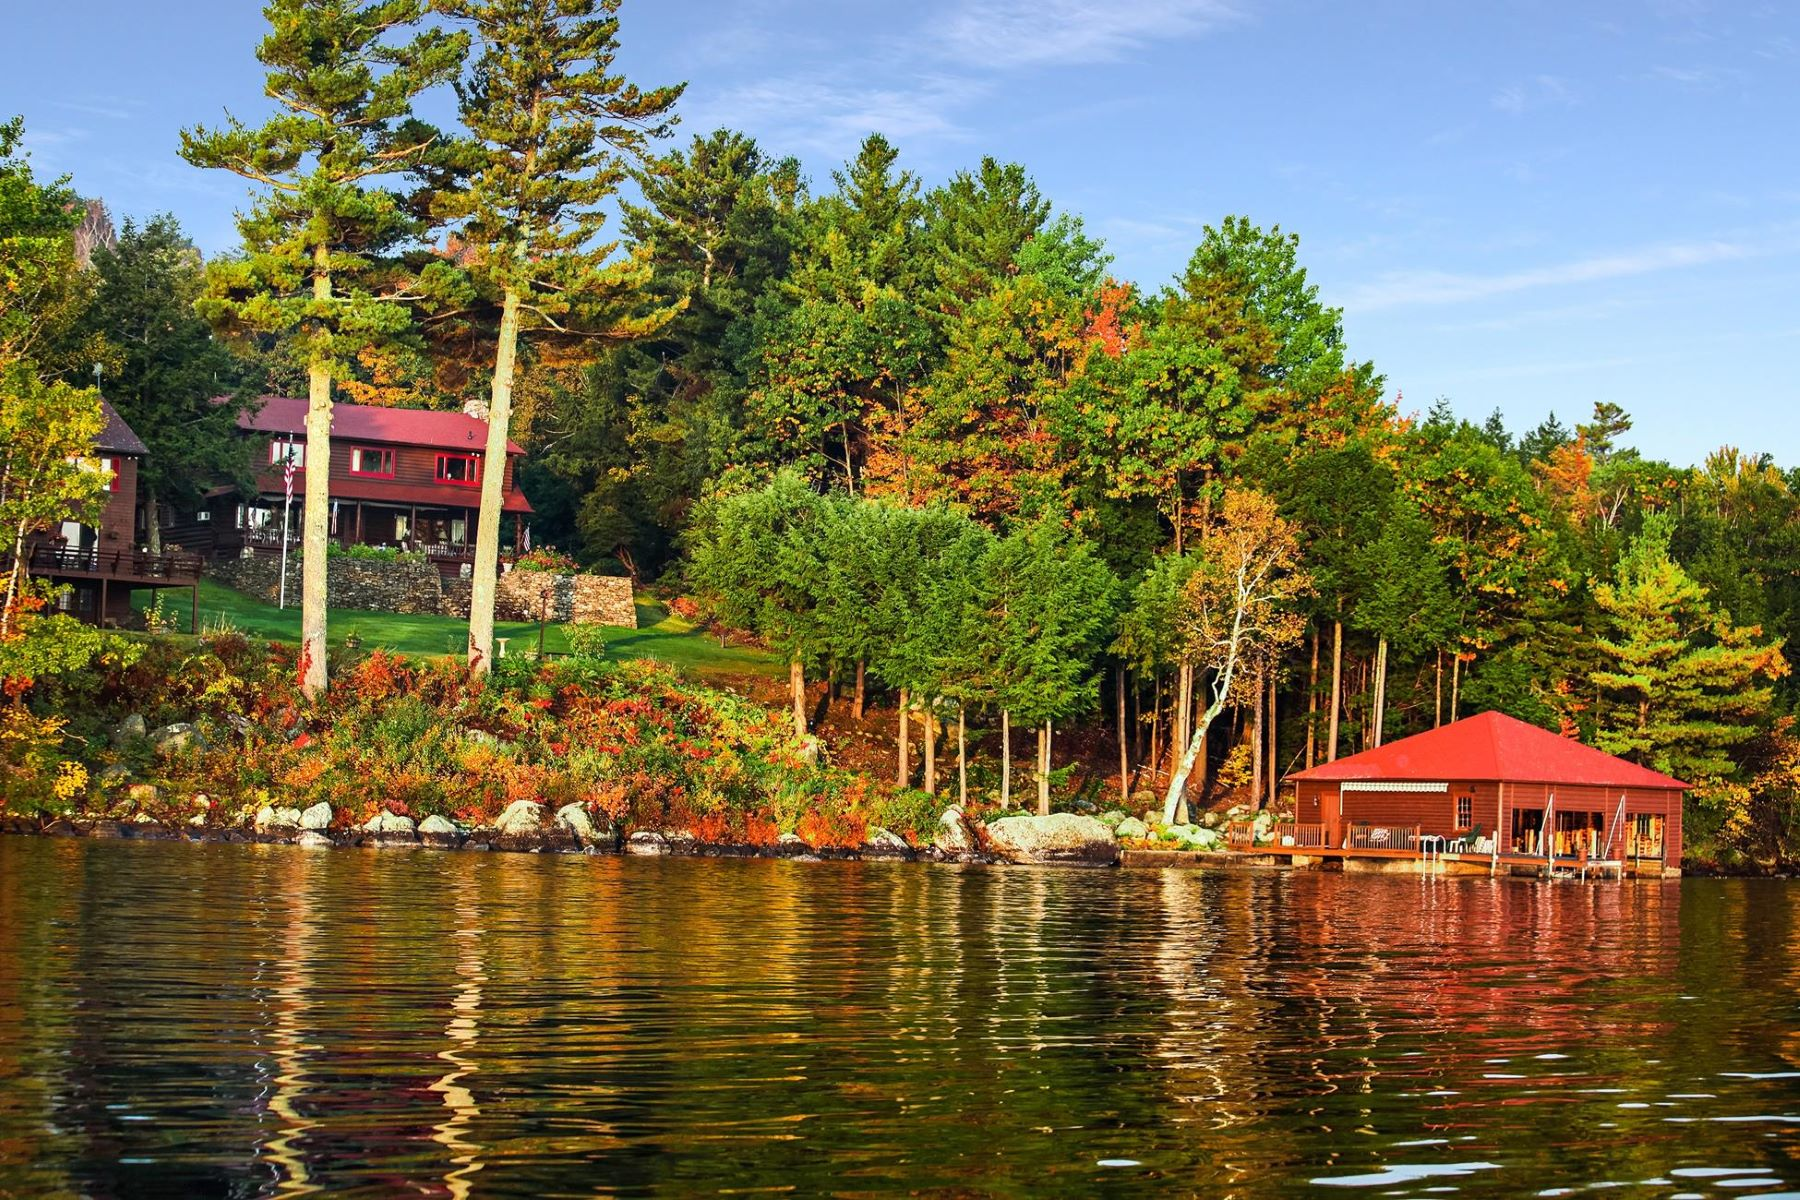 Single Family Home for Sale at Lake Sunapee Compound 158 Garnet Hill Rd Sunapee, New Hampshire 03782 United States